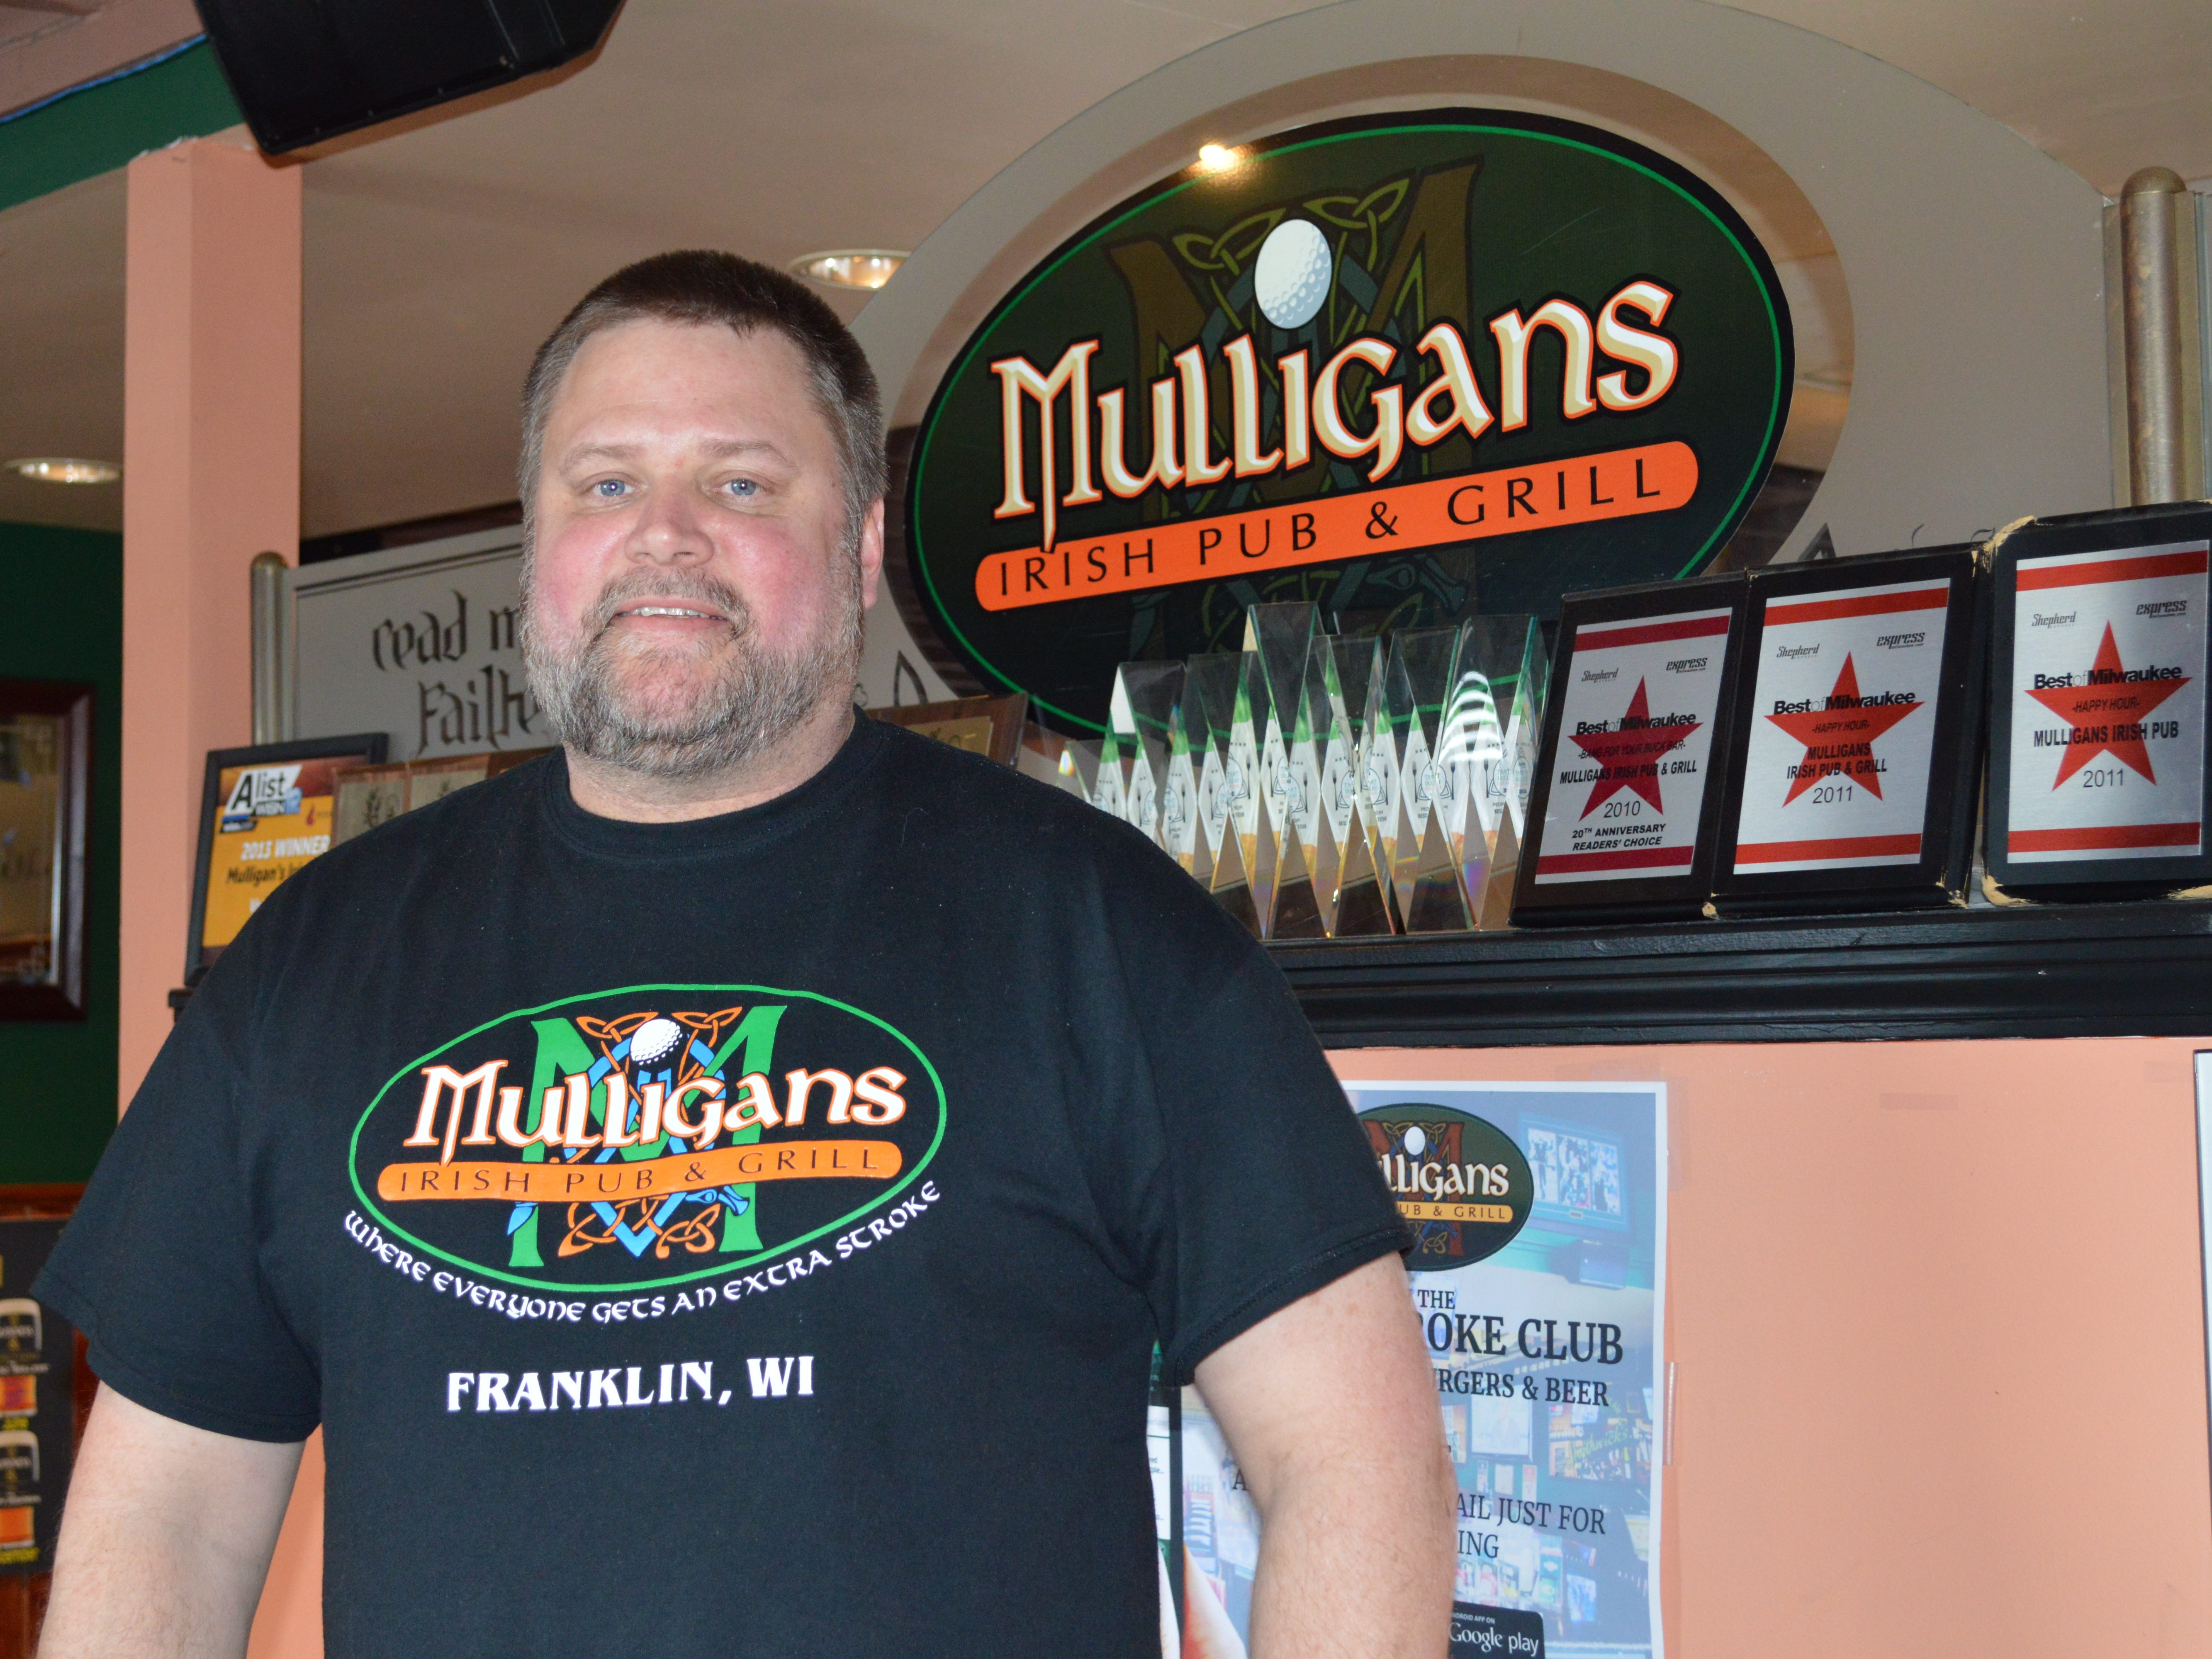 Brian Francis opened Mulligans Irish Pub and Grill in July 2009.